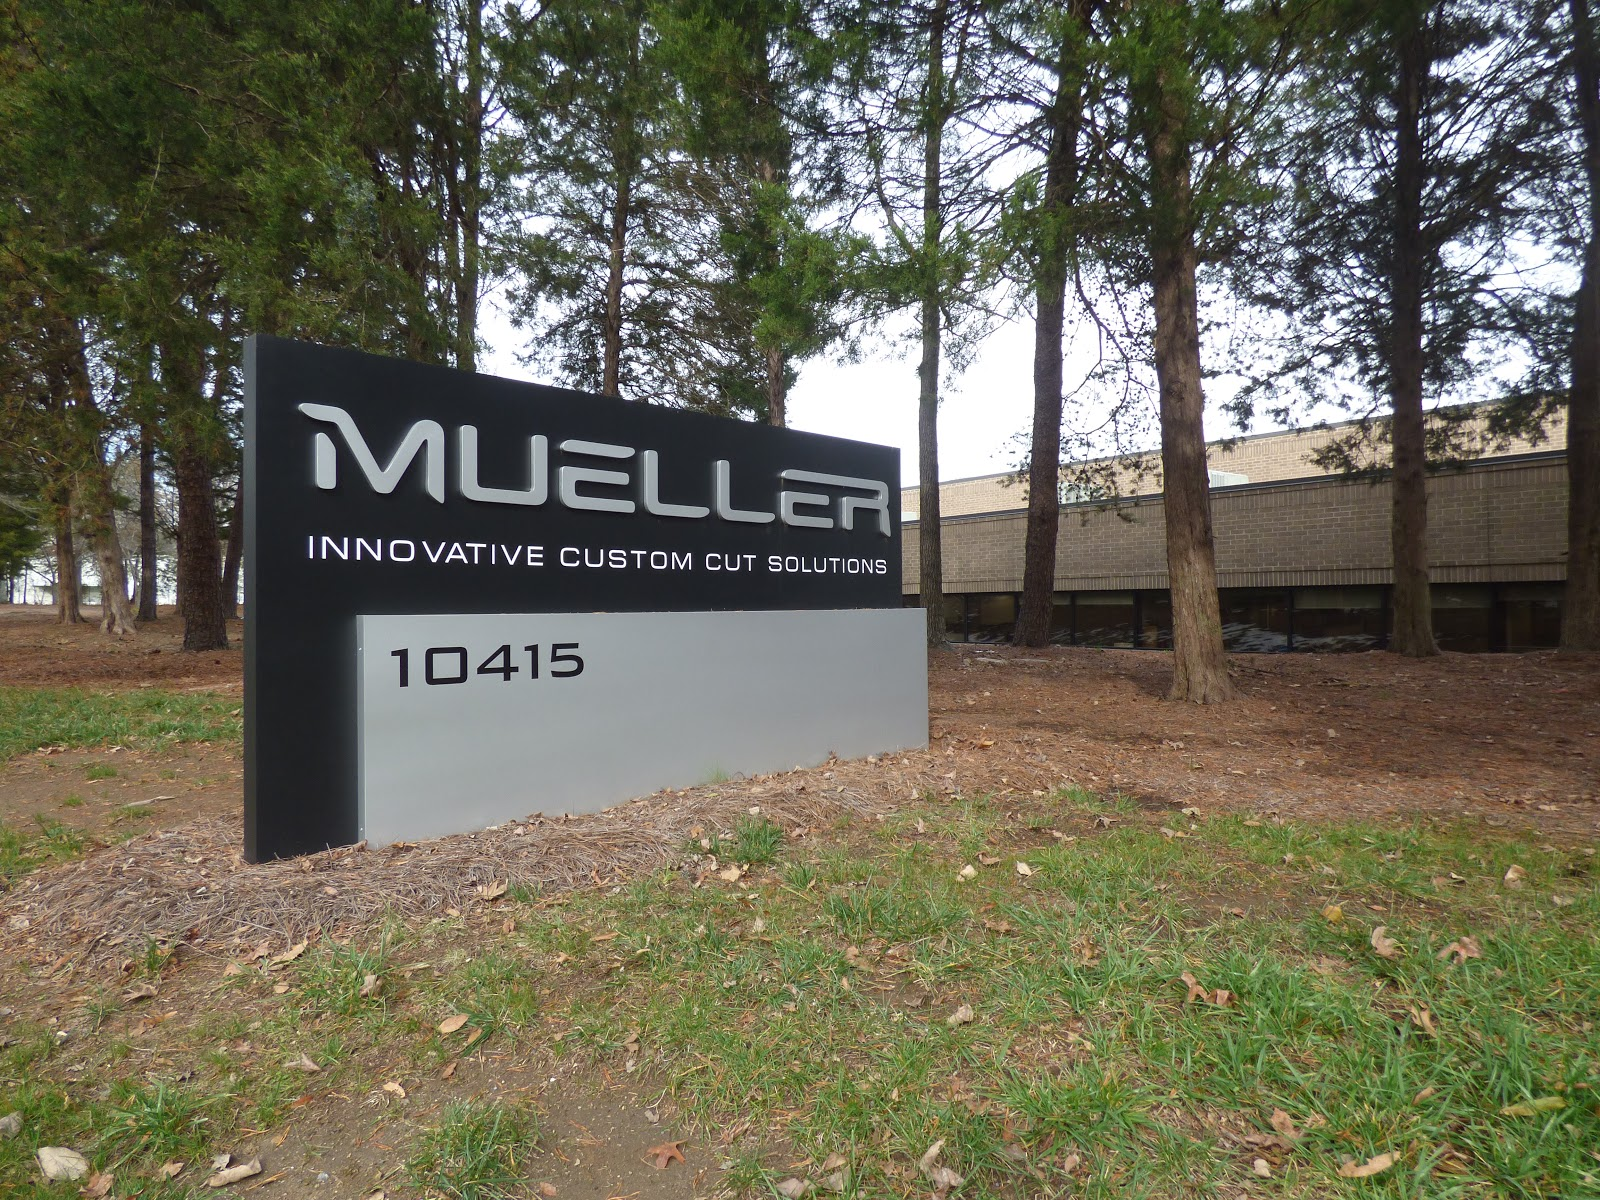 How Mueller and 3M Teamed Up on a Shipping Solution for a Manufacturer